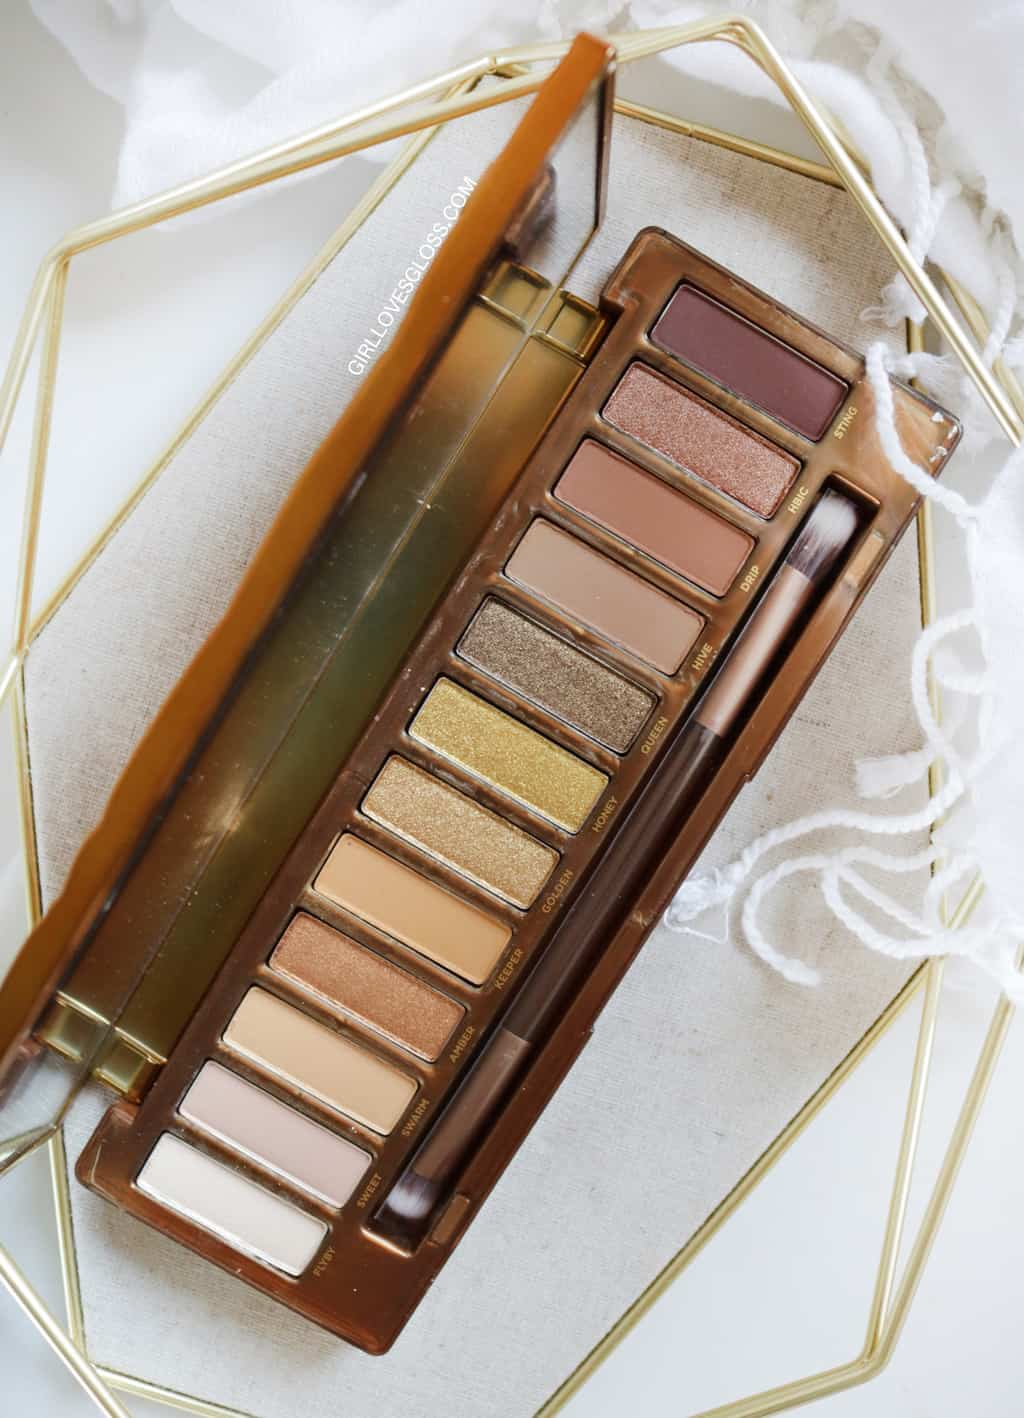 Another Day, Another Urban Decay Naked (Honey) Palette